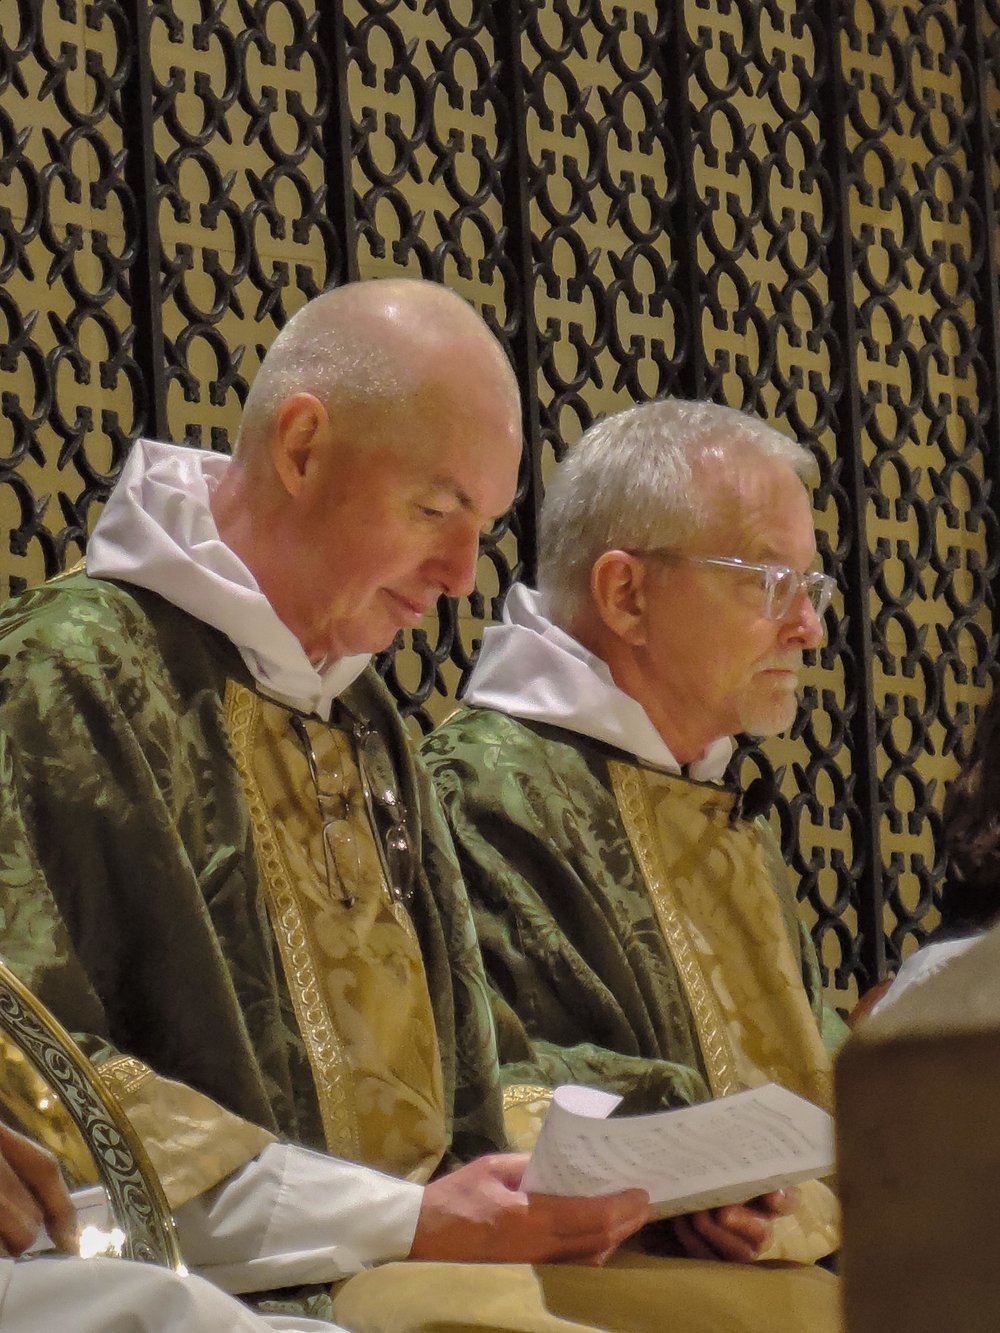 Father Pace was celebrant and preacher for the Solemn Mass on January 15.